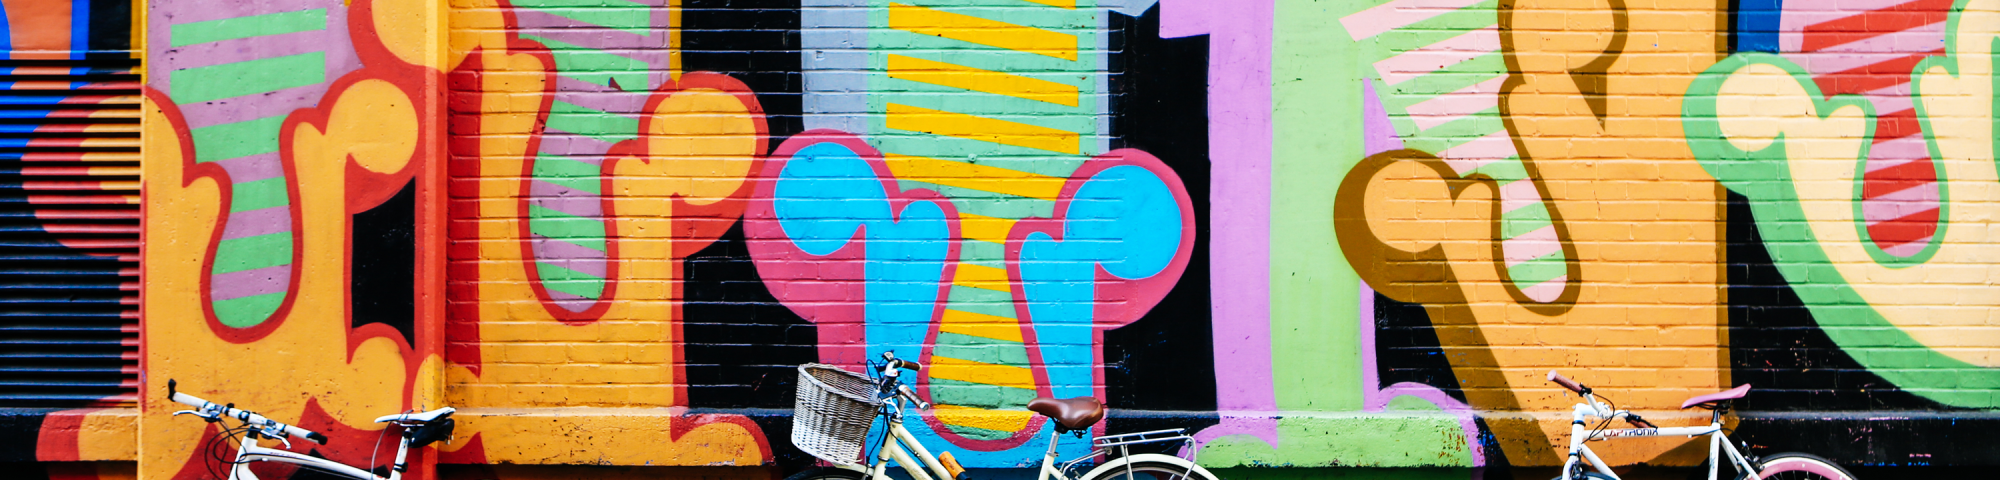 Bikes in front of graffiti